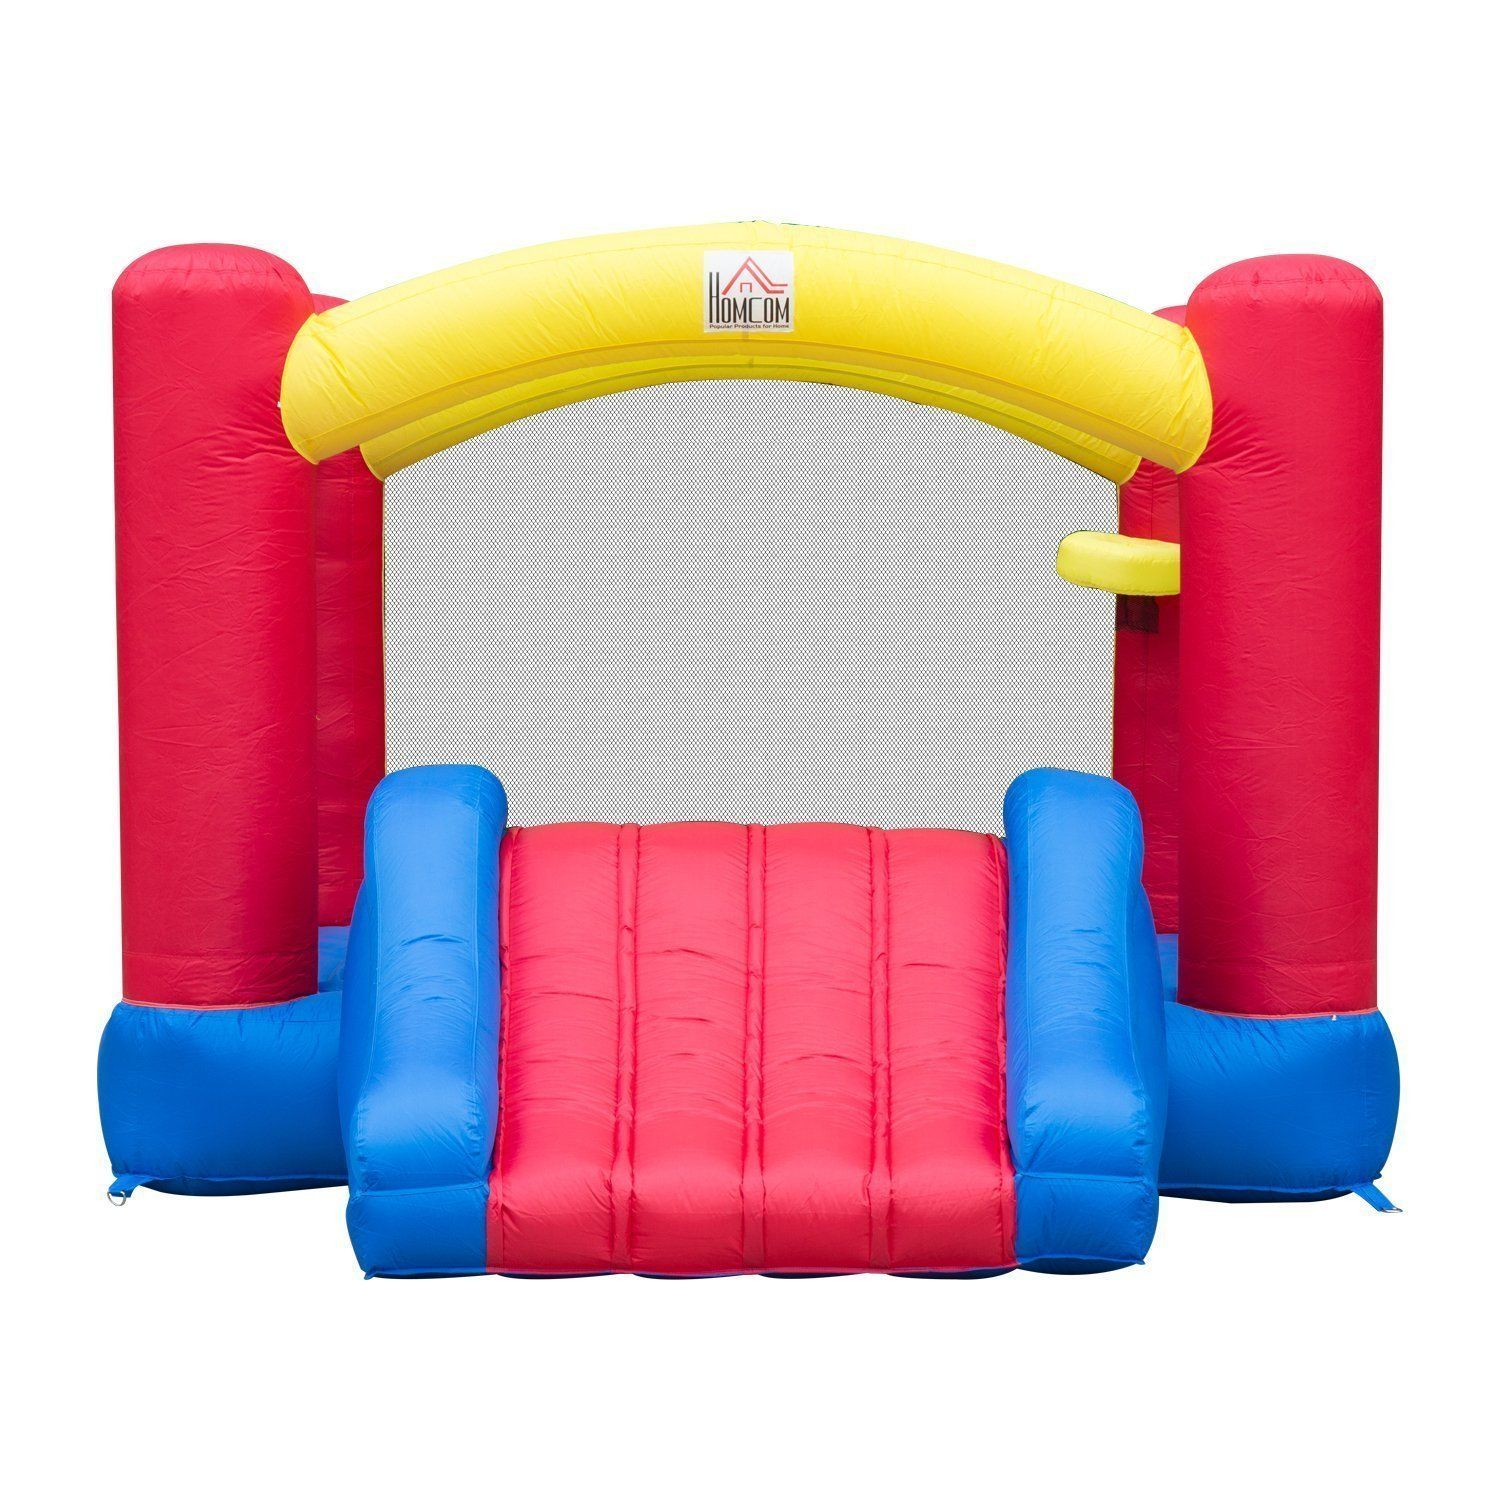 castillo hinchable infantil oferta amazon